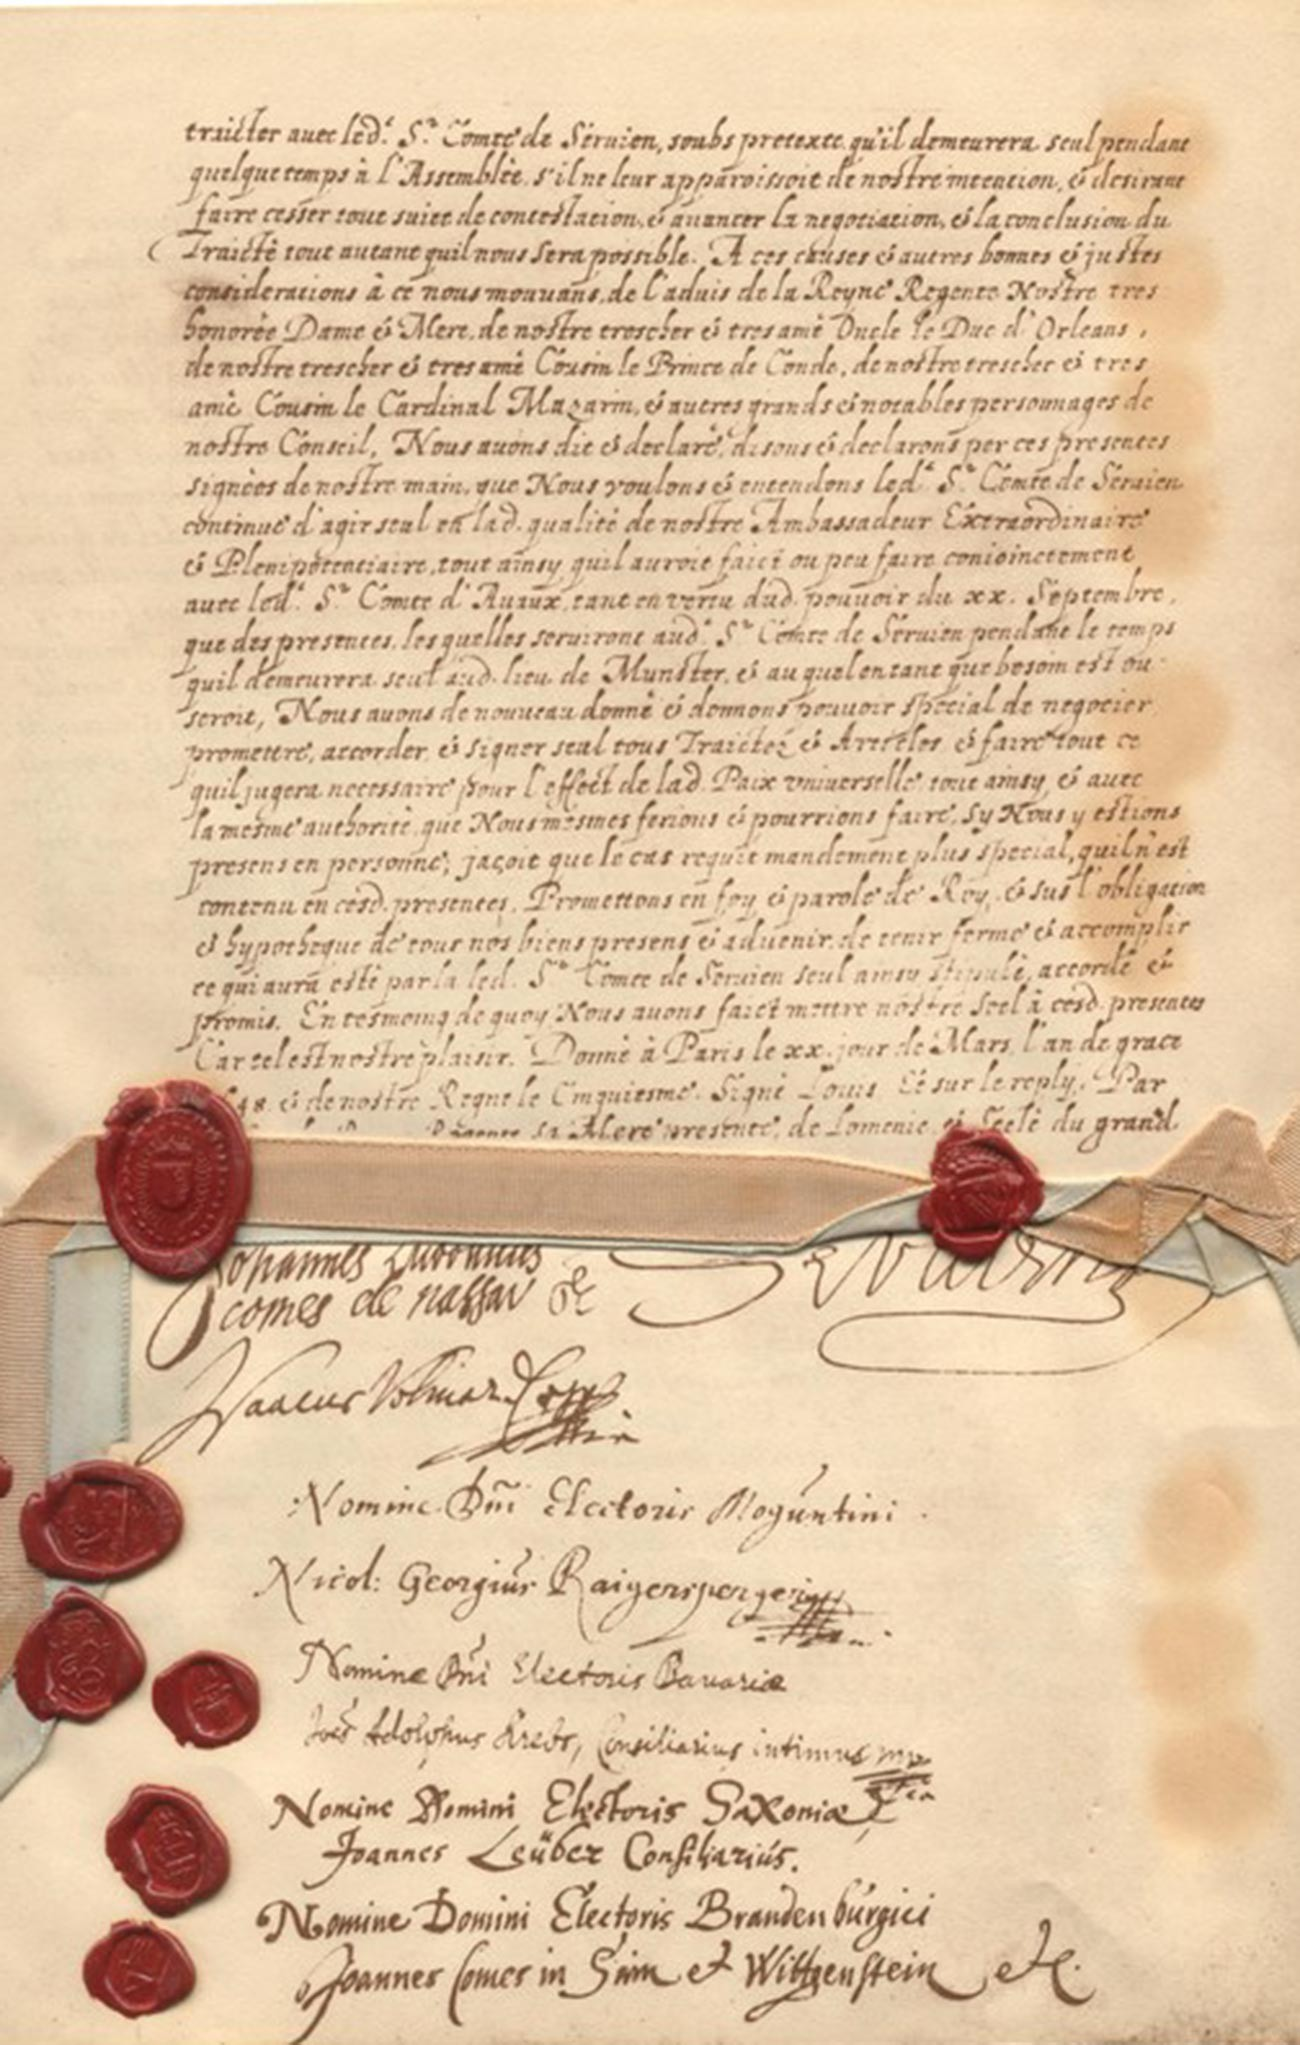 The last page of the Peace of Westphalia Treaties, written in French